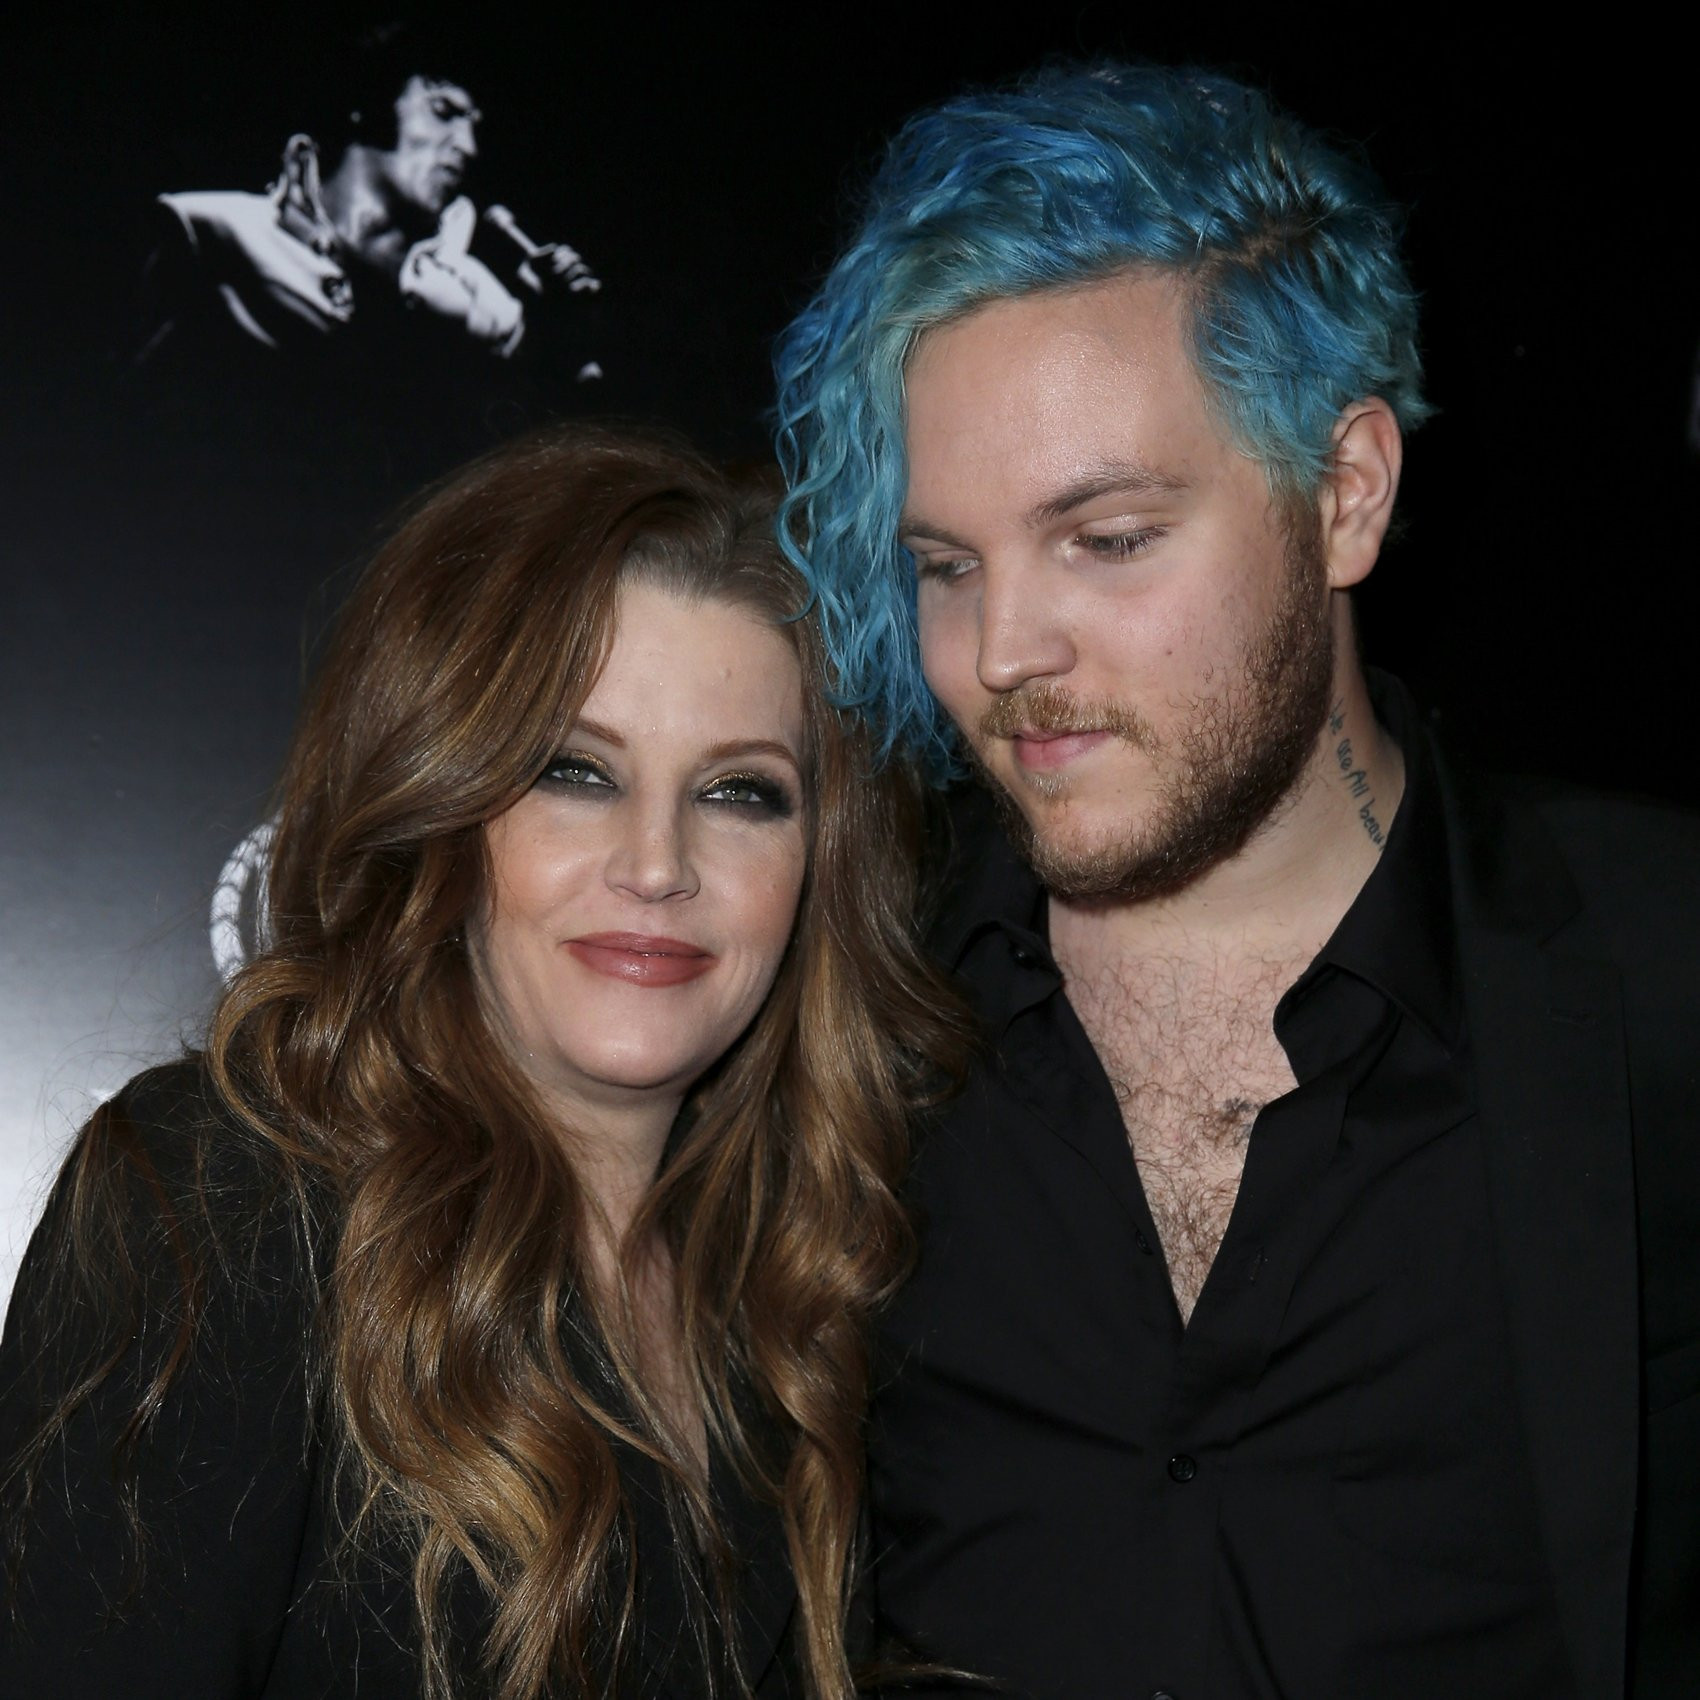 Lisa Marie Presley's son Benjamin Keough died at the age of 27 in July 2020